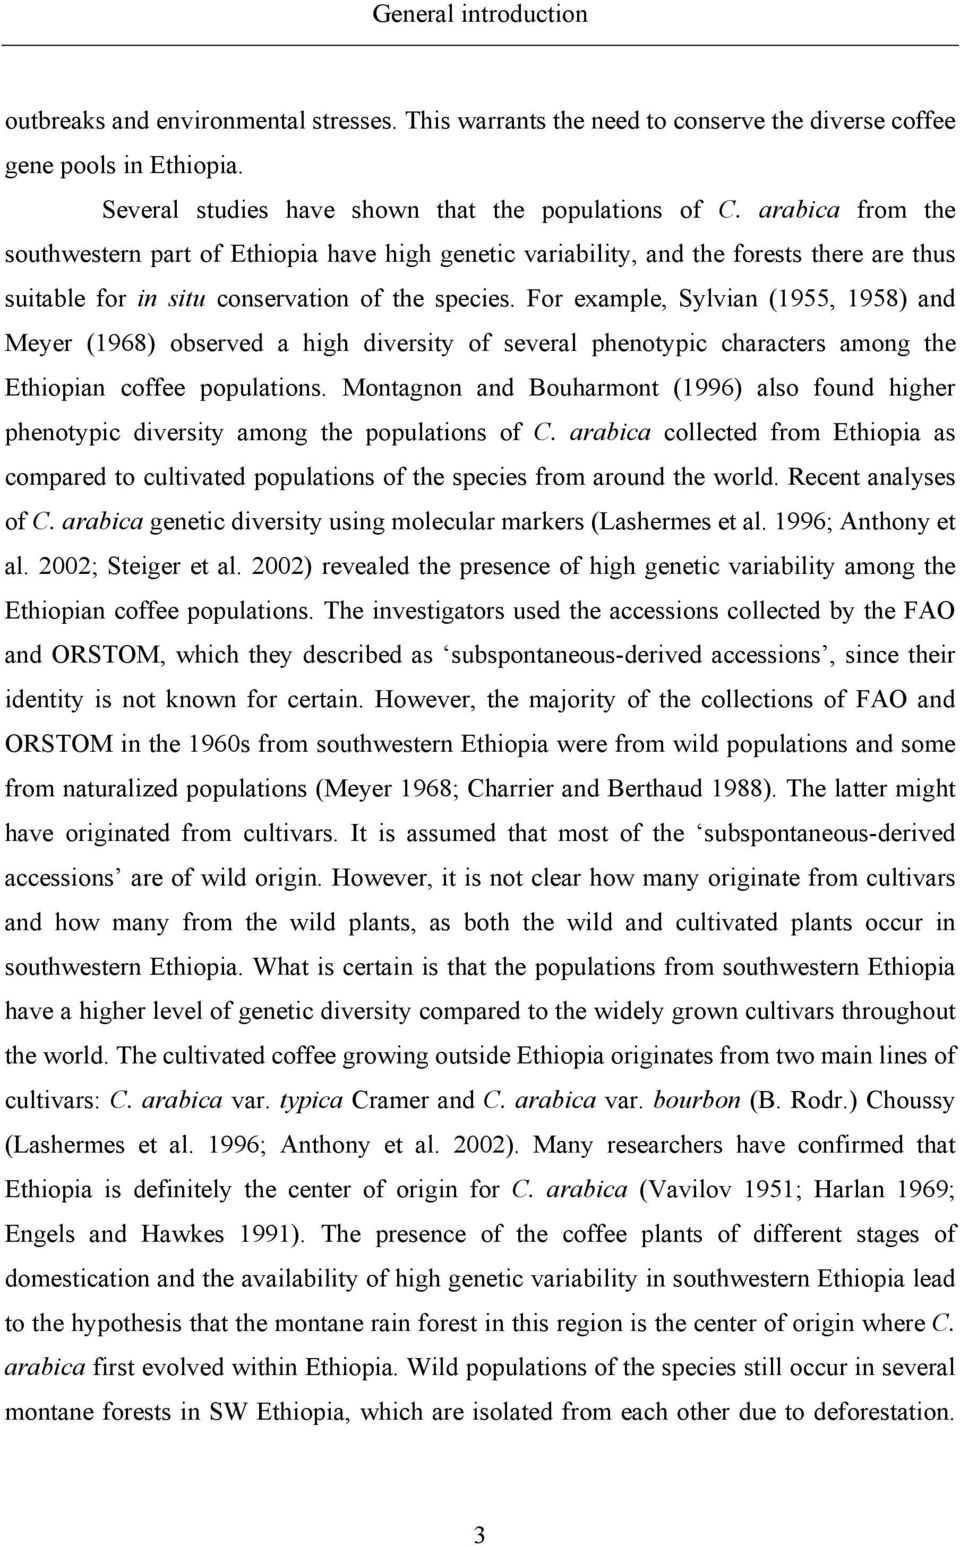 For example, Sylvian (1955, 1958) and Meyer (1968) observed a high diversity of several phenotypic characters among the Ethiopian coffee populations.